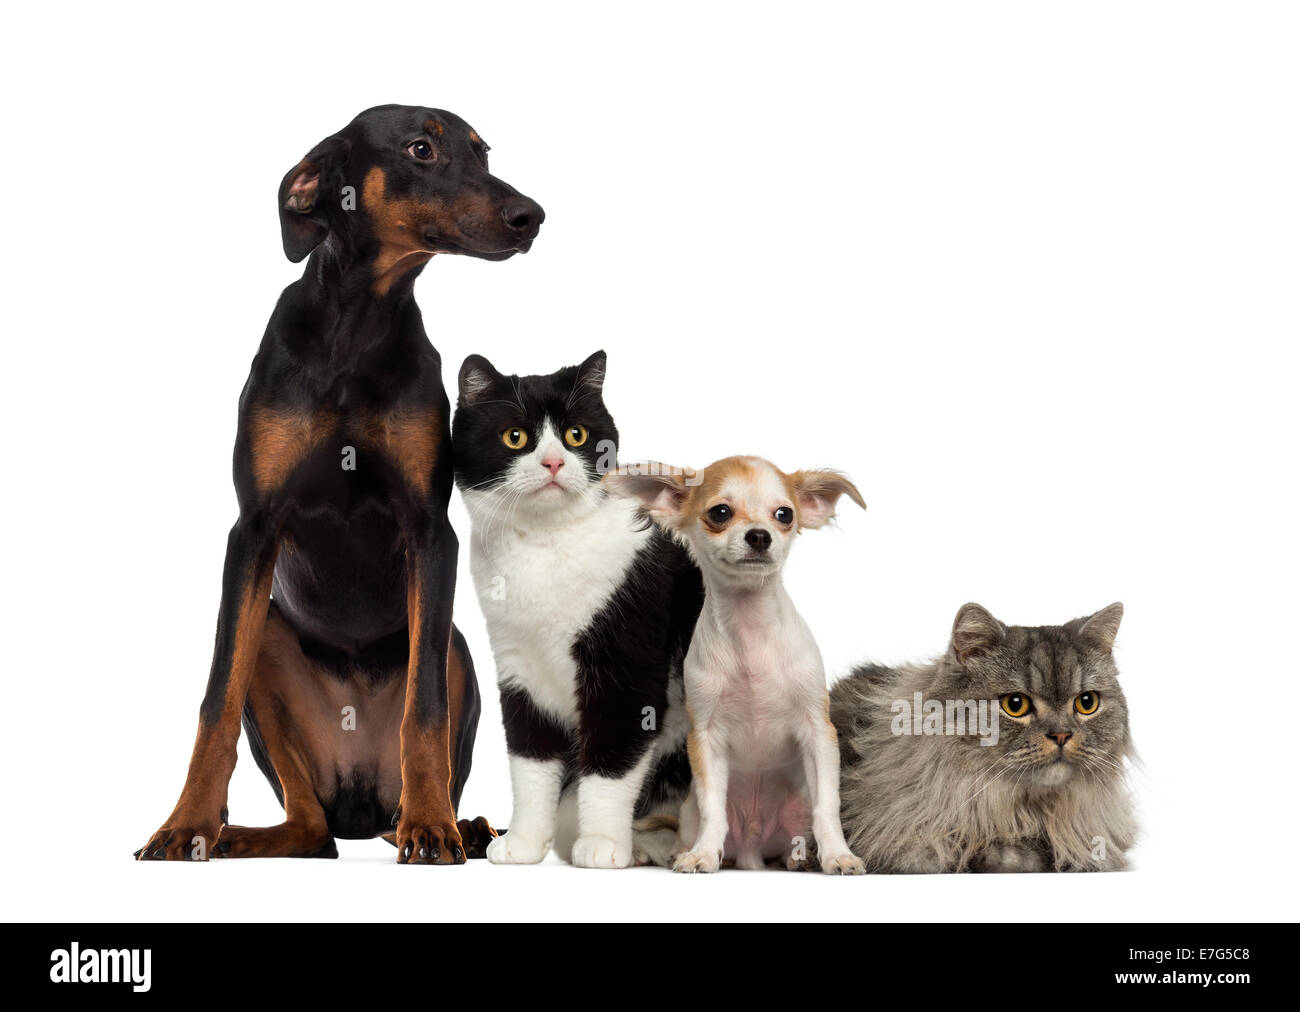 Cat and Dogs sitting together and looking at the camera against white background - Stock Image